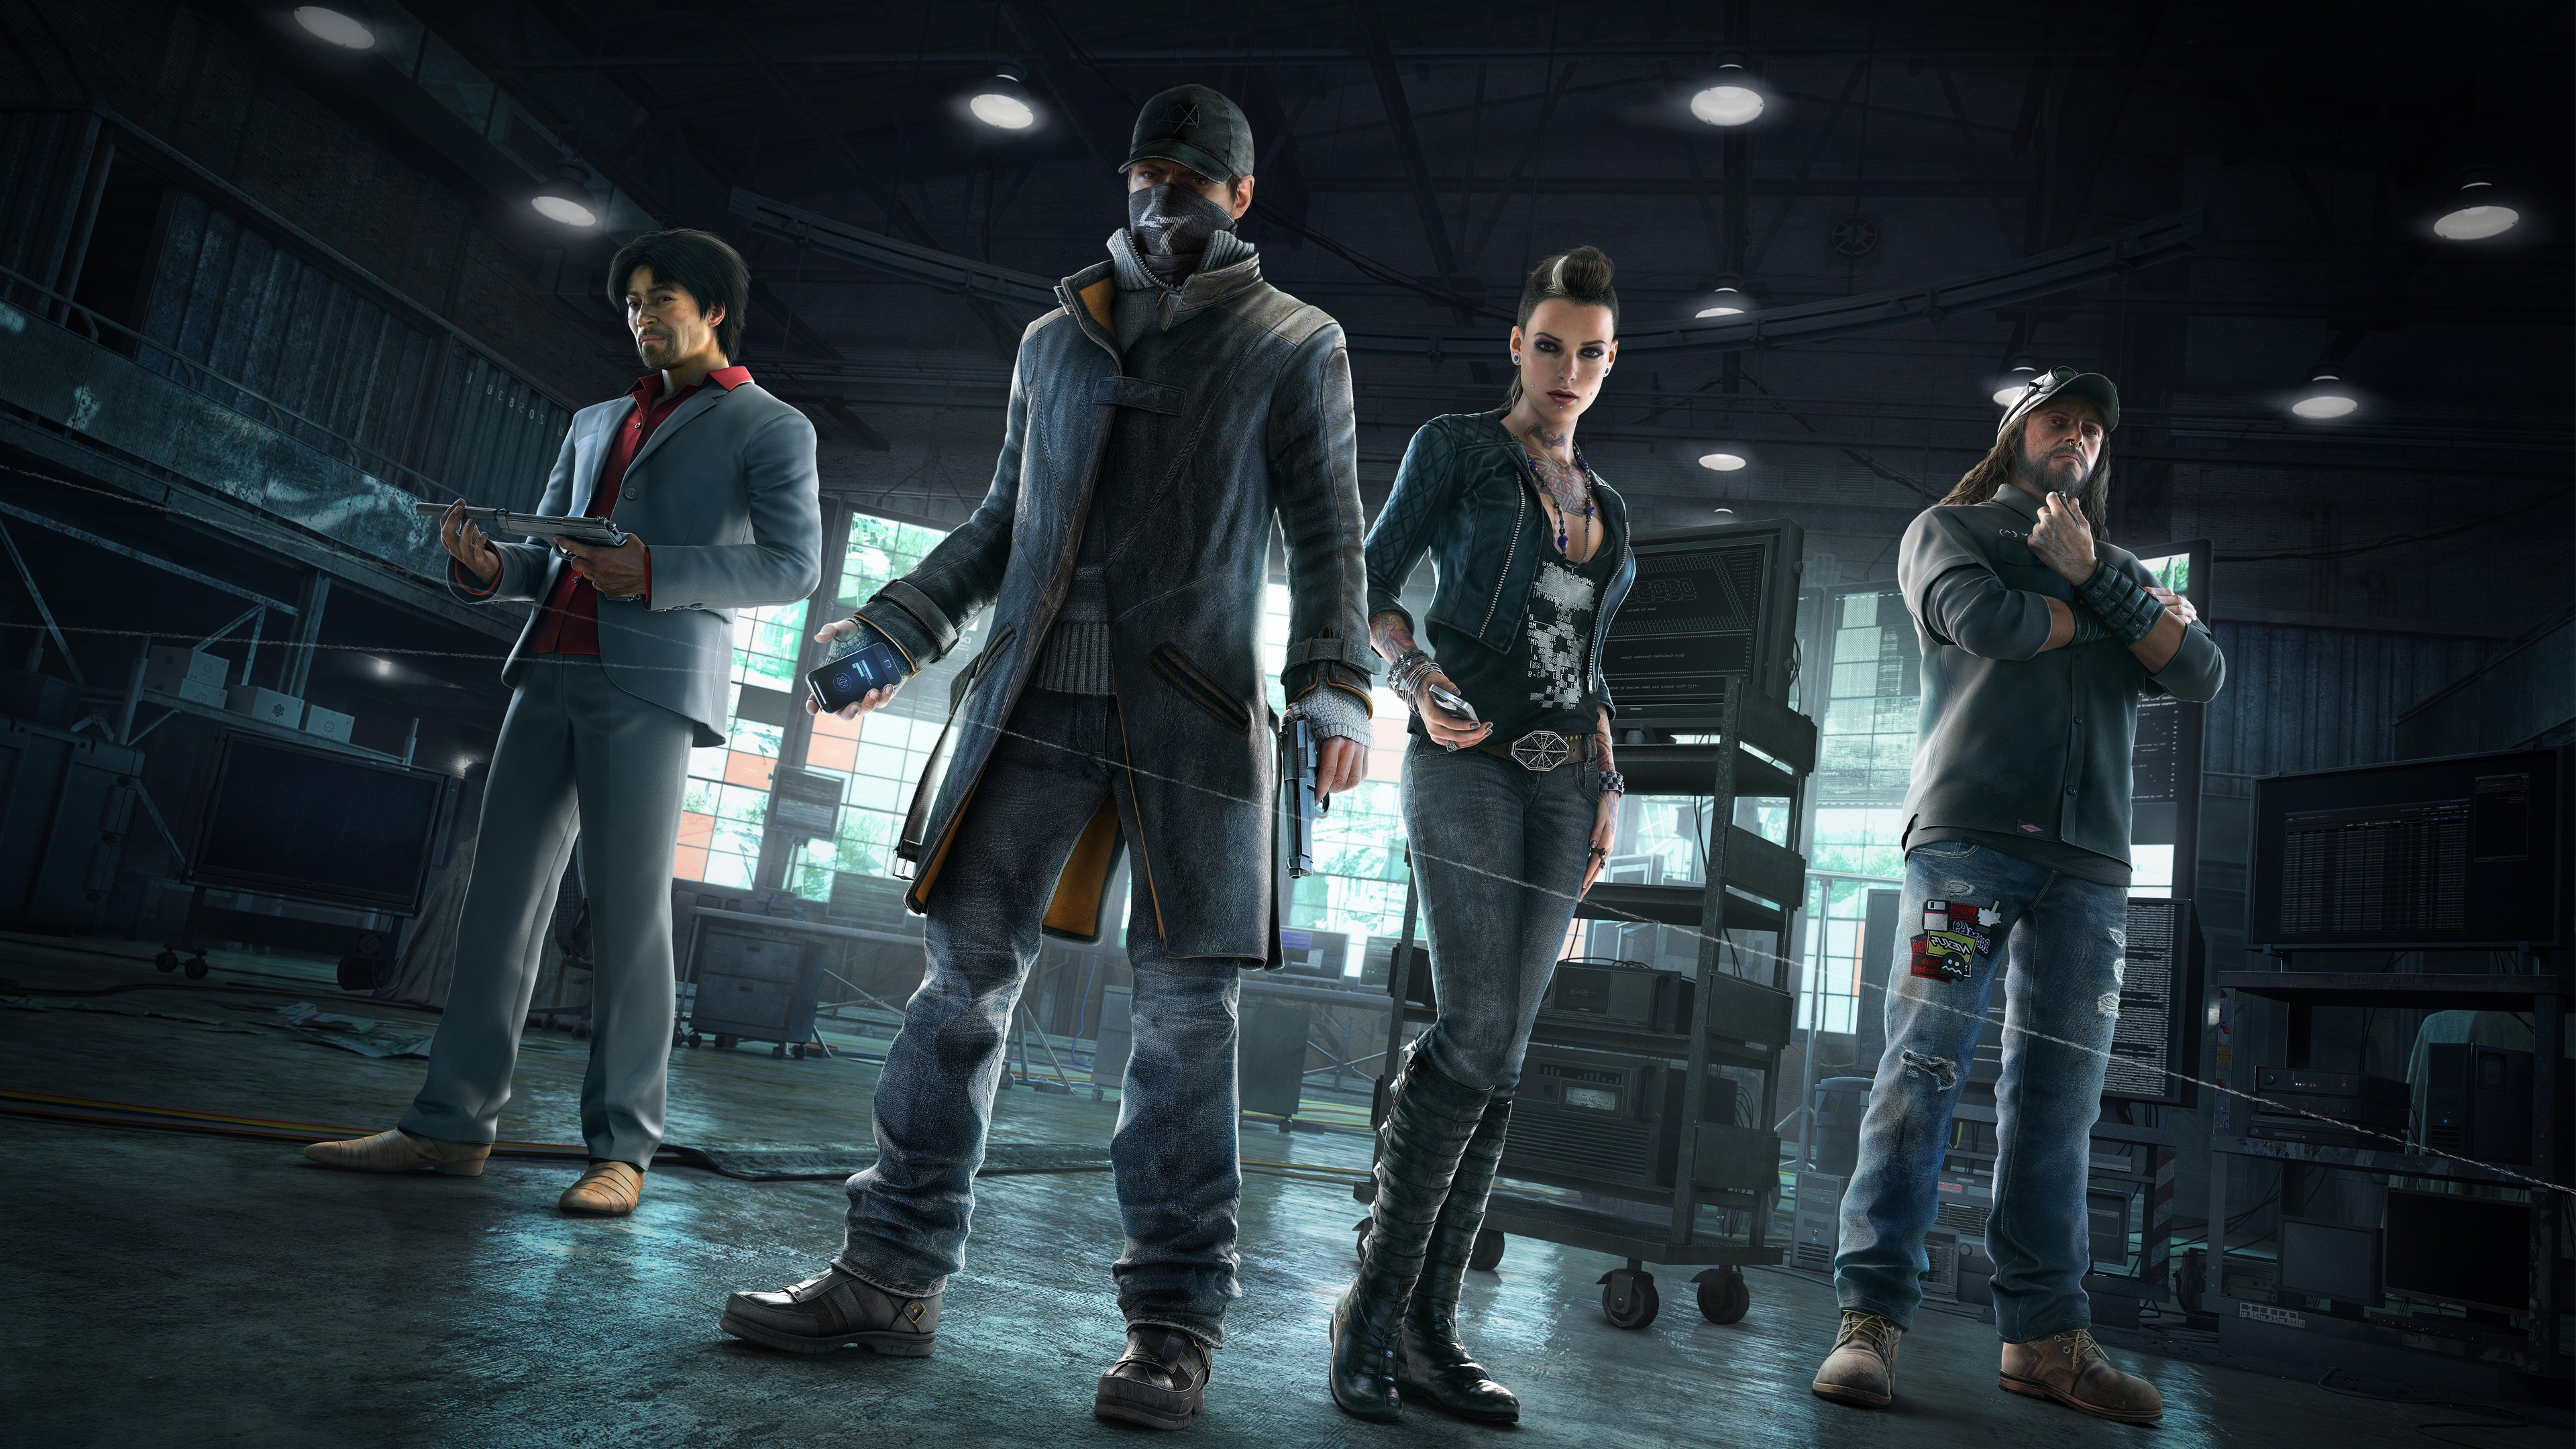 watch dogs 2 1535966596 - Watch Dogs 2 - xbox games wallpapers, watch dogs 2 wallpapers, ps games wallpapers, pc games wallpapers, games wallpapers, 2016 games wallpapers